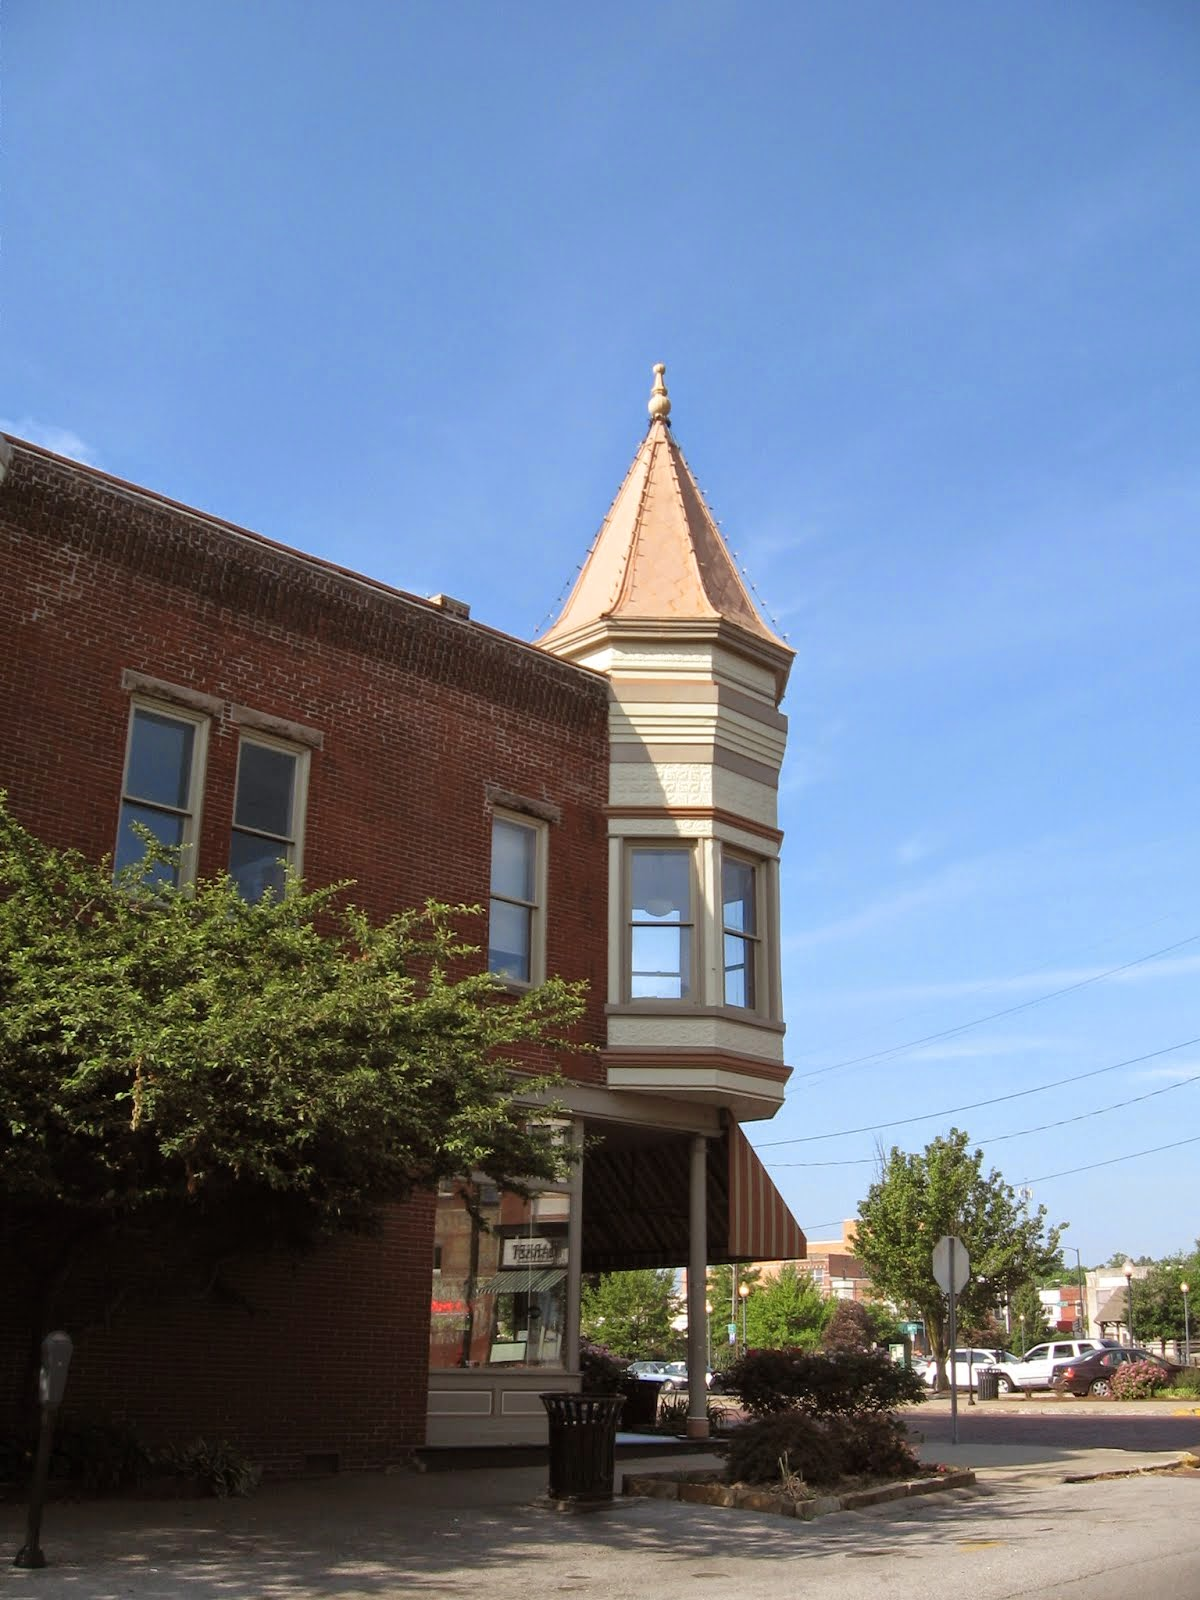 F.A.Prickett Building -Built 1903